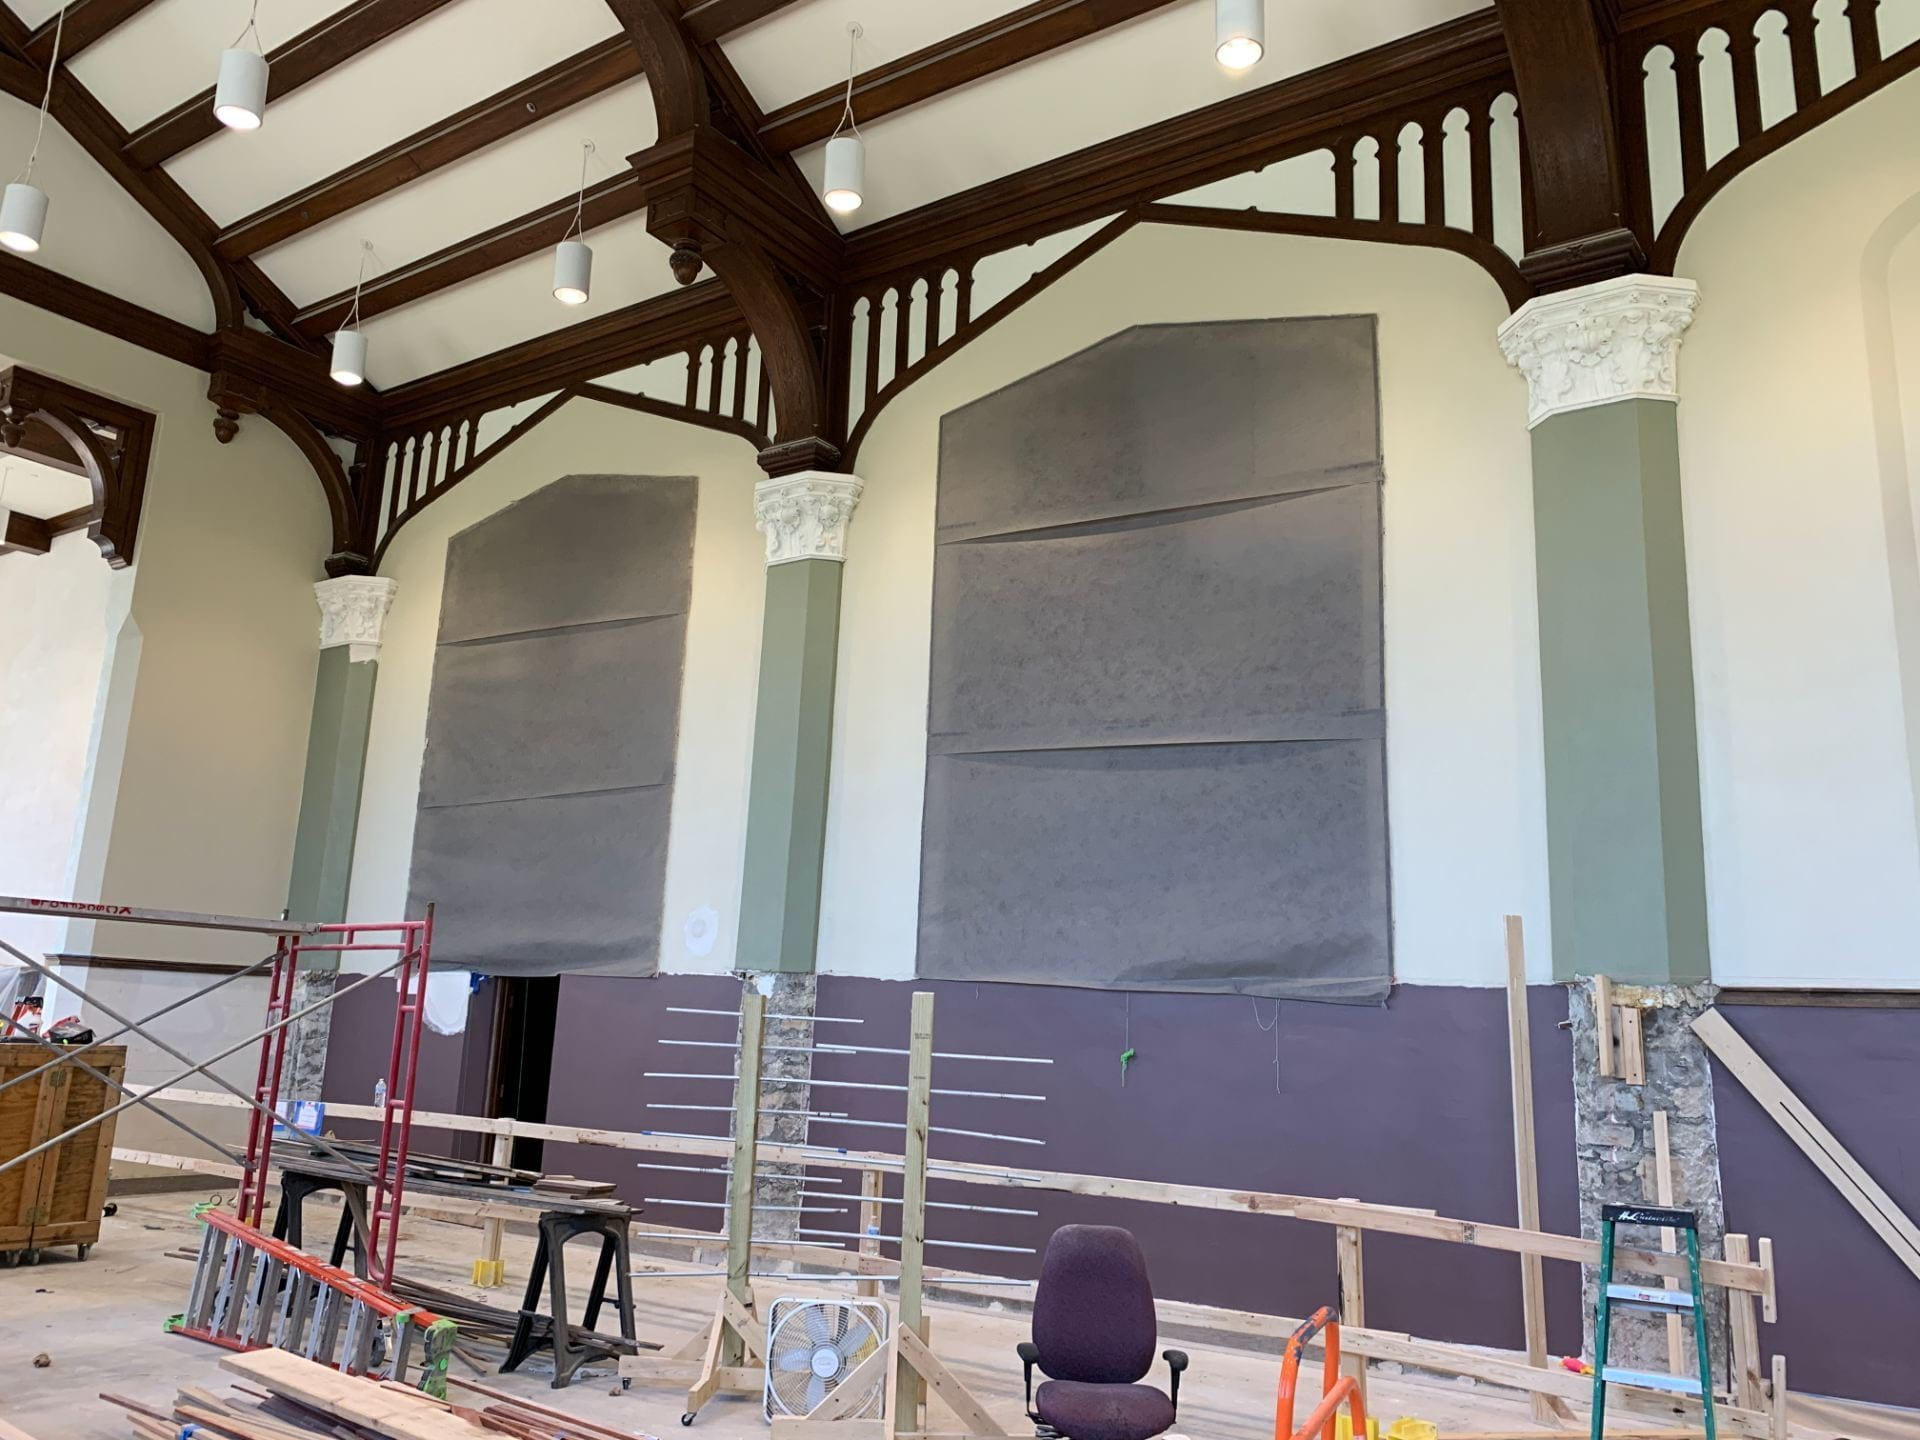 A picture of the walls surrounding the Great Room murals, painted purple, cream and green.